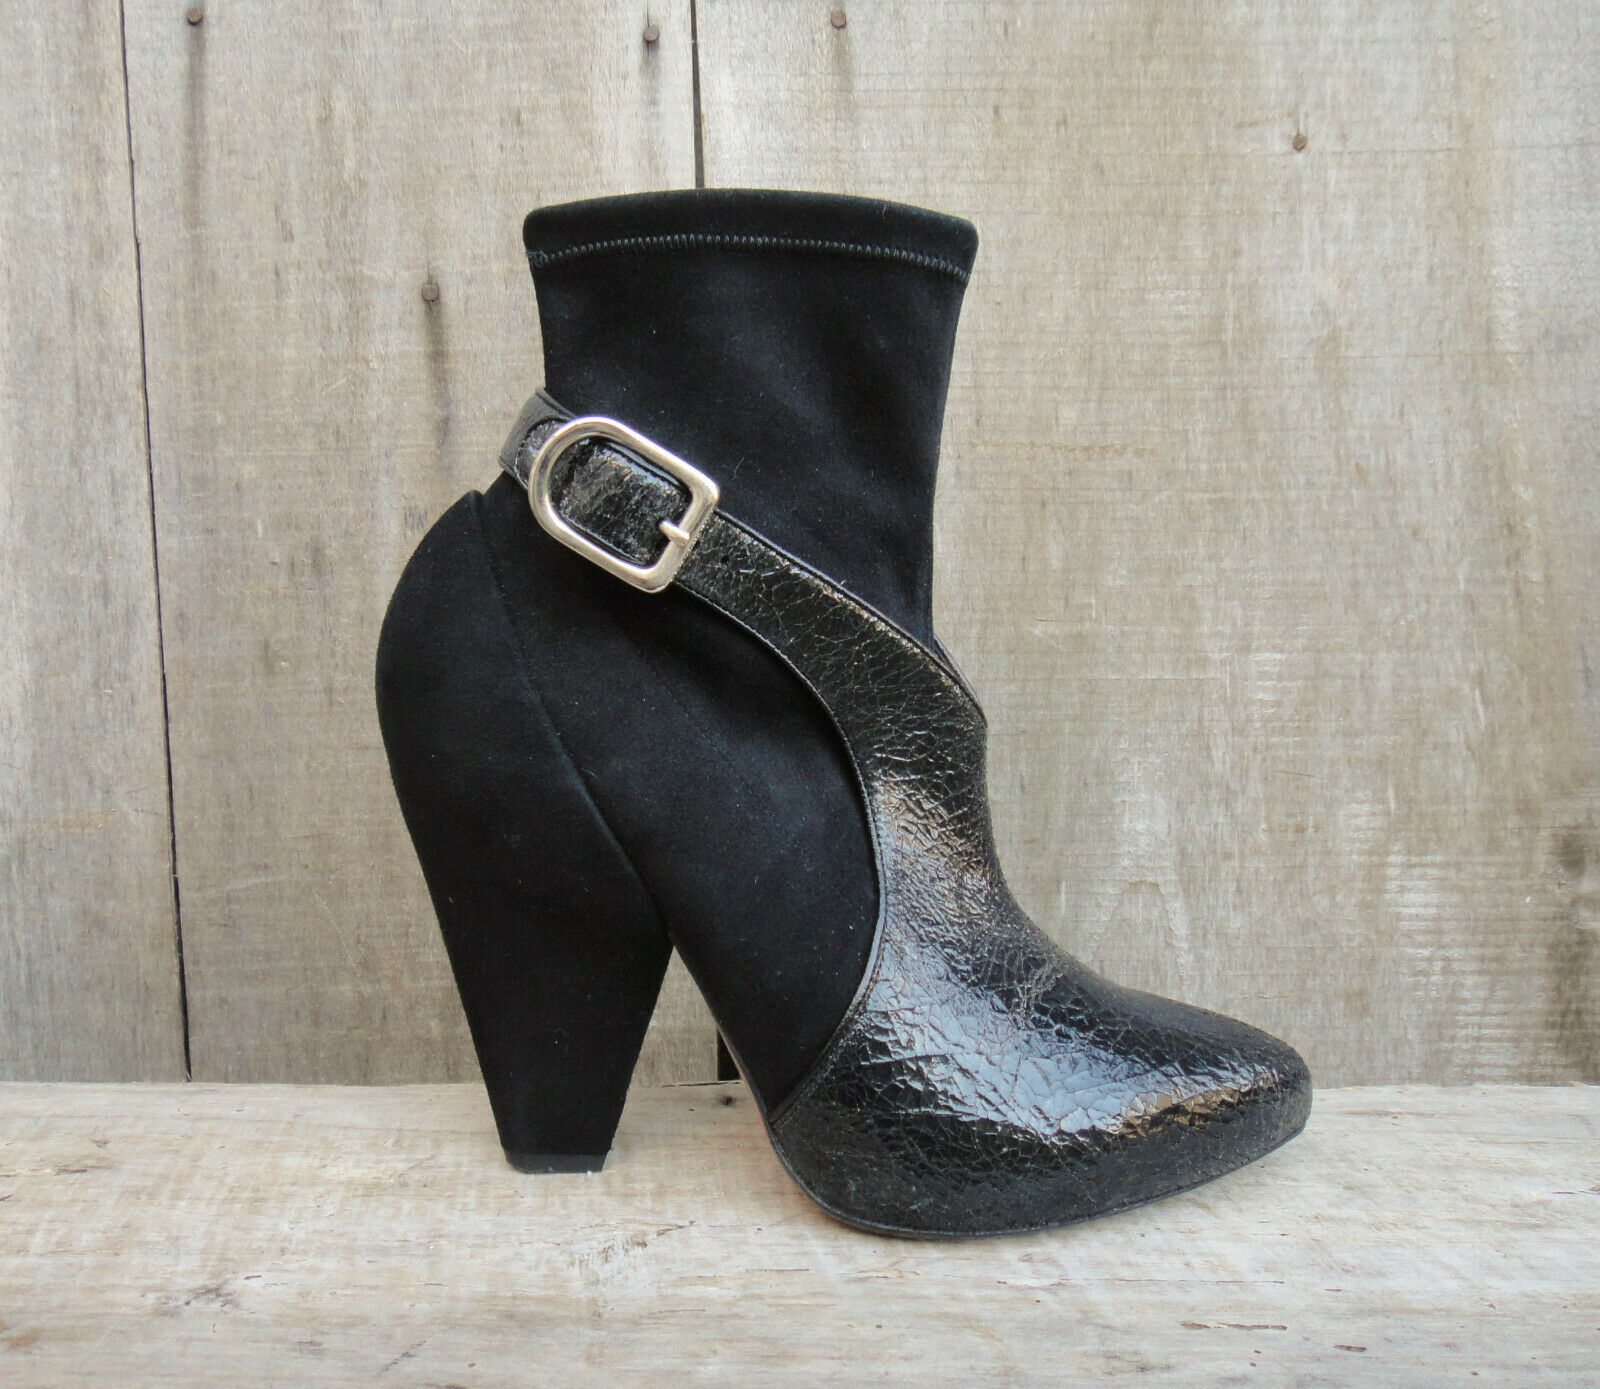 Bottines Sonia Rykiel en chevreau stretch et cuir verni